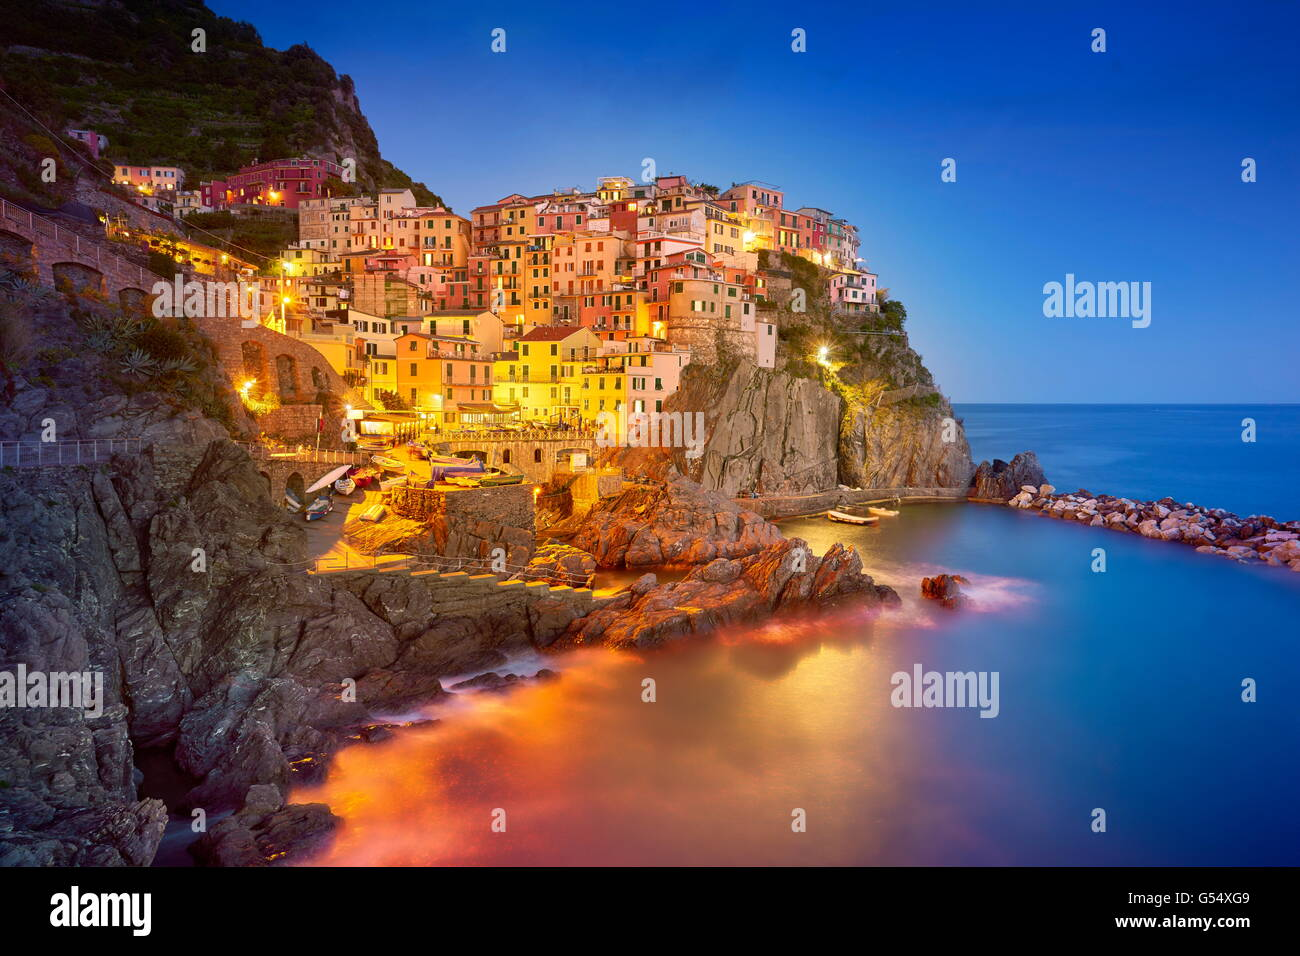 Manarola at evening night, Cinque Terre National Park, Liguria, Italy, UNESCO Stock Photo